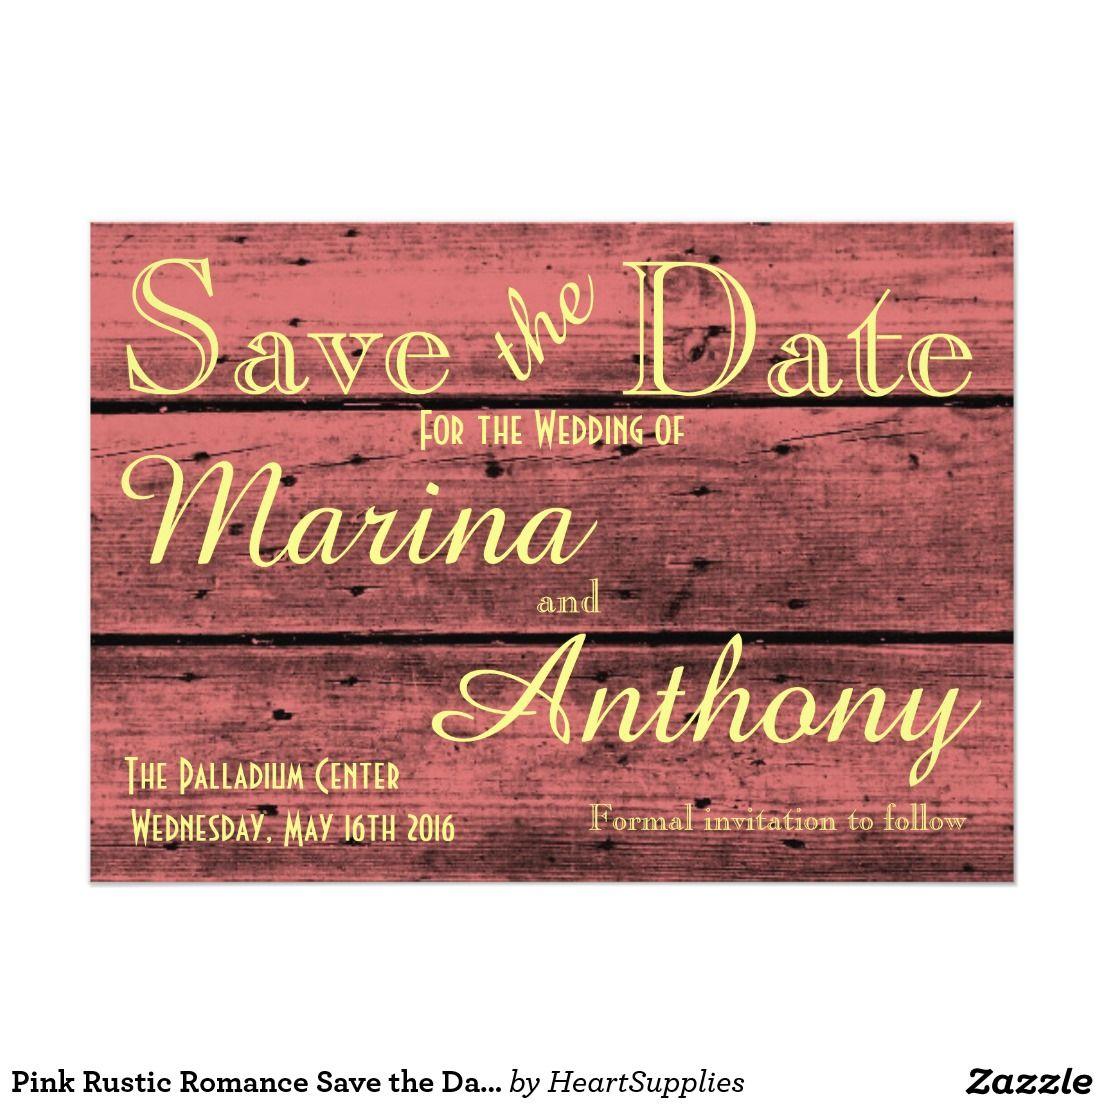 Pink Rustic Romance Save the Date No. 6 5x7 Invitation from #zazzle ...